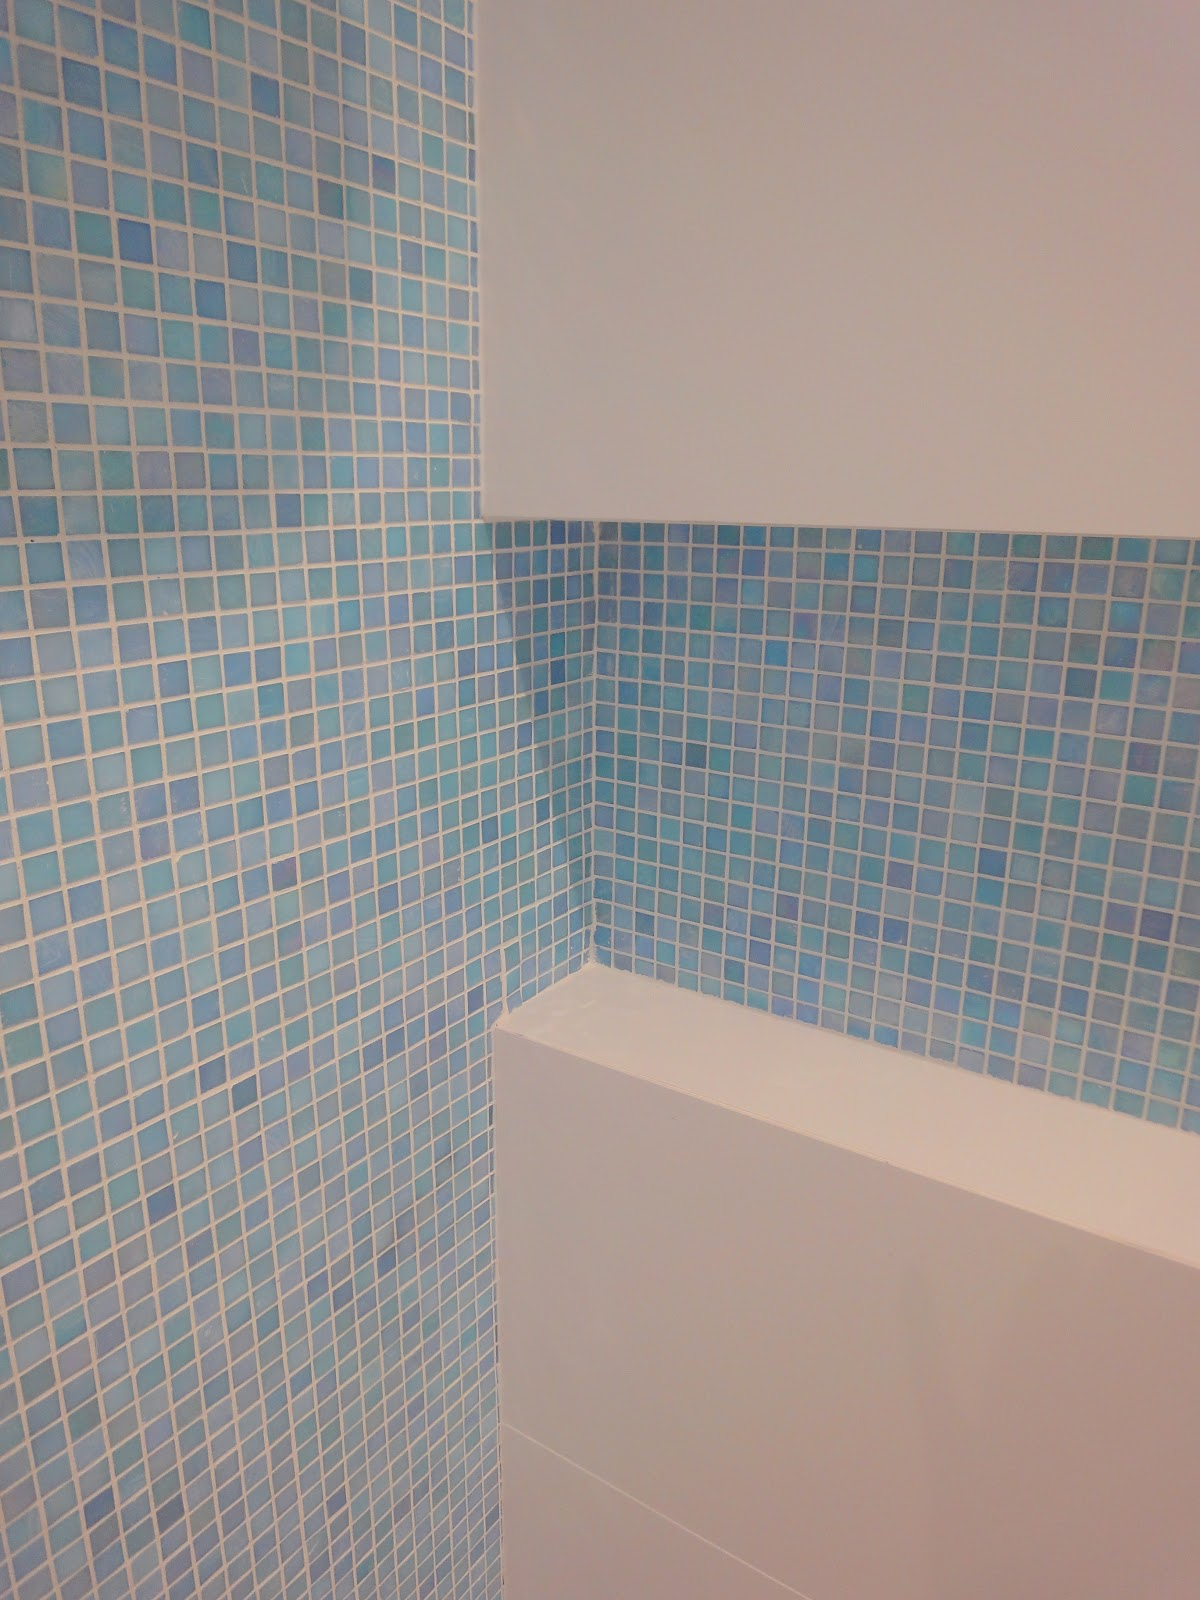 Somany Bathroom Tiles The Girl In The Brick House We 39re In 2 Bedrooms